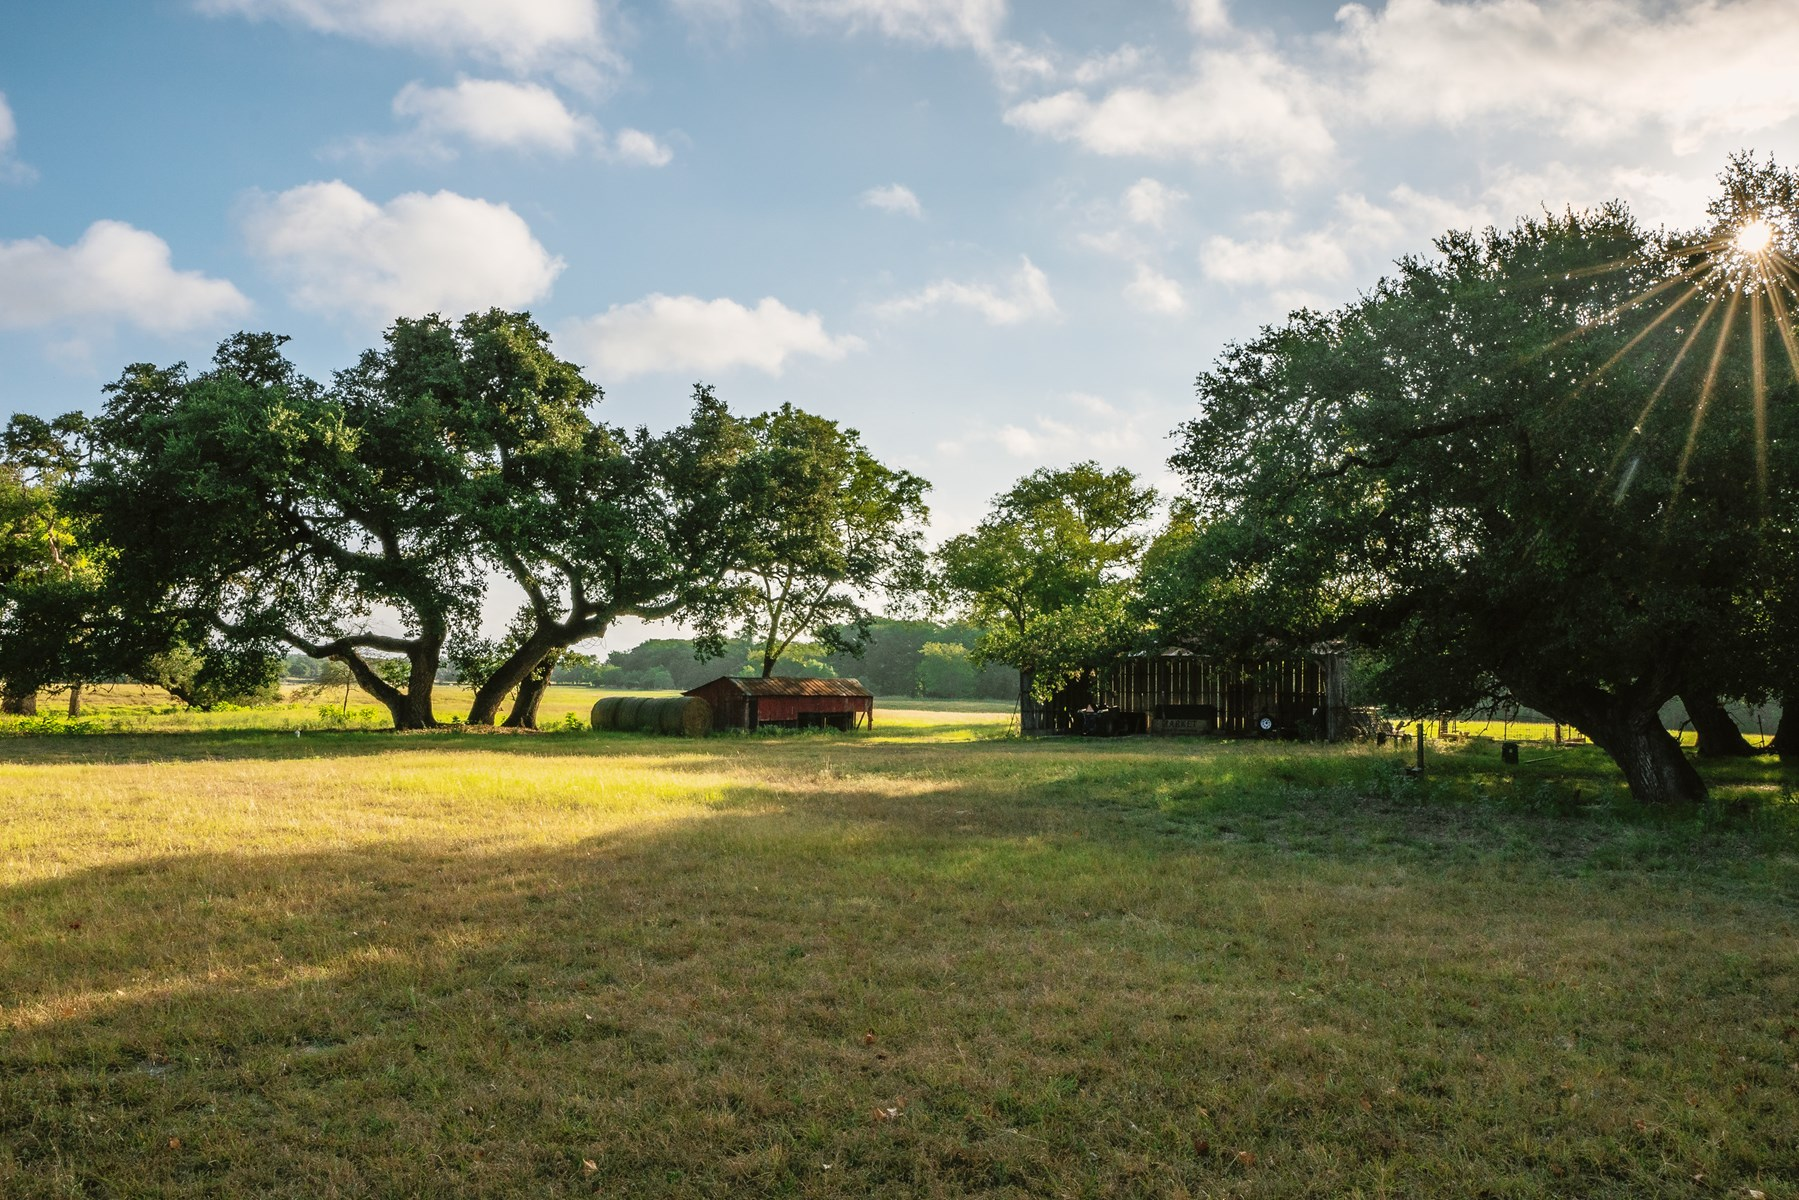 Unrestricted Land For Sale in Sisterdale Texas